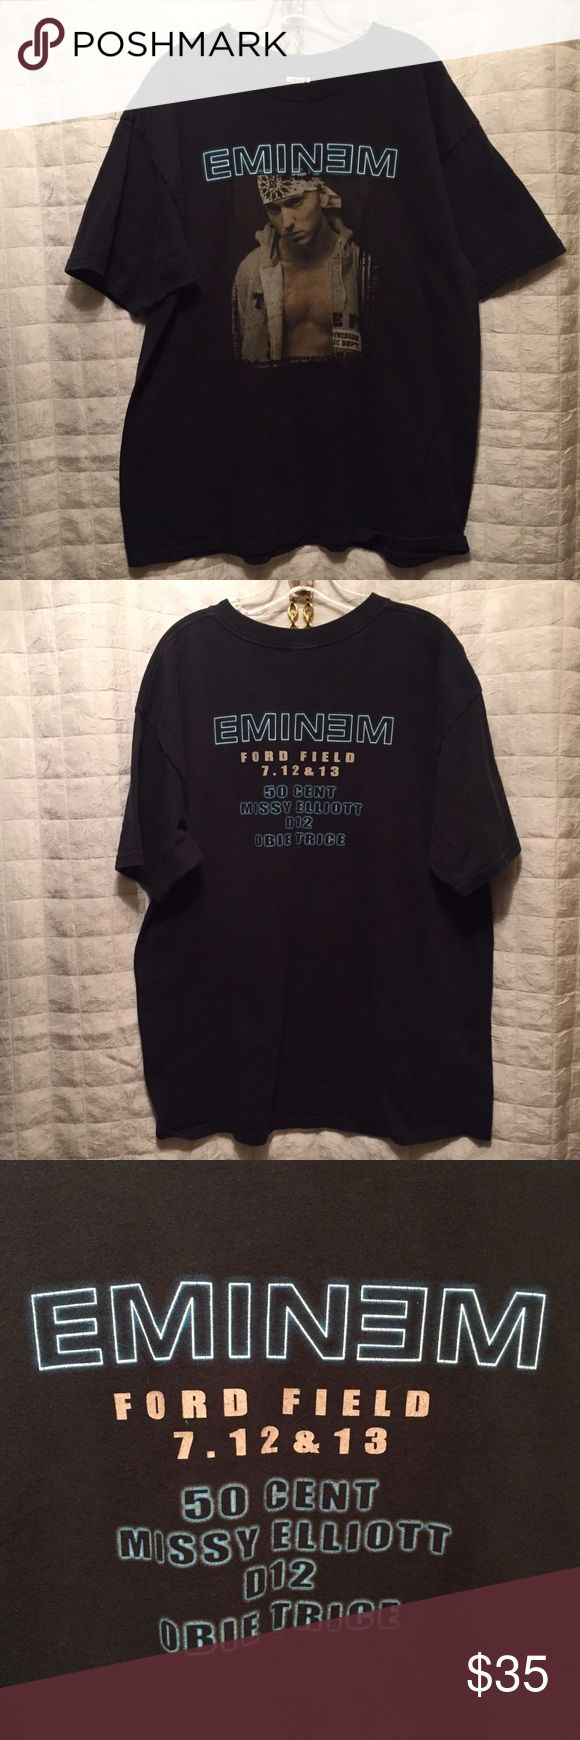 "Eminem 2003 concert shirt missy Elliott 50 cent Awesome retro tee from Eminem's early days. Great condition for its age, light fading to black, emblems/writing fully intact what a great line up. 100% cotton, 47x29"" Shirts Tees - Short Sleeve"